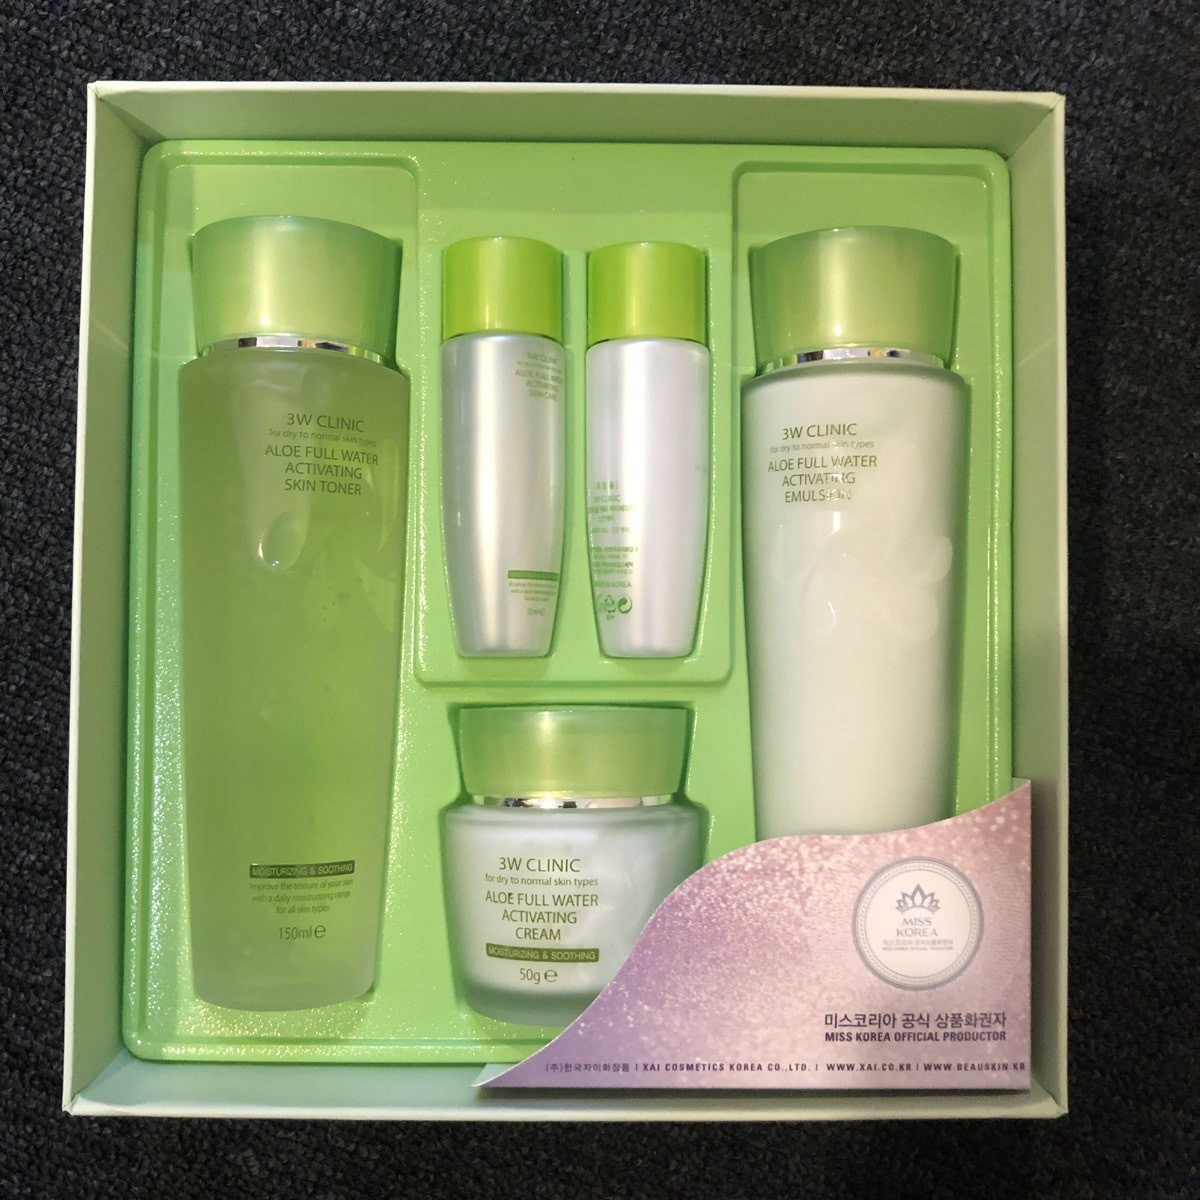 Aloe Full Water Activating Skin Set [3W CLINIC]